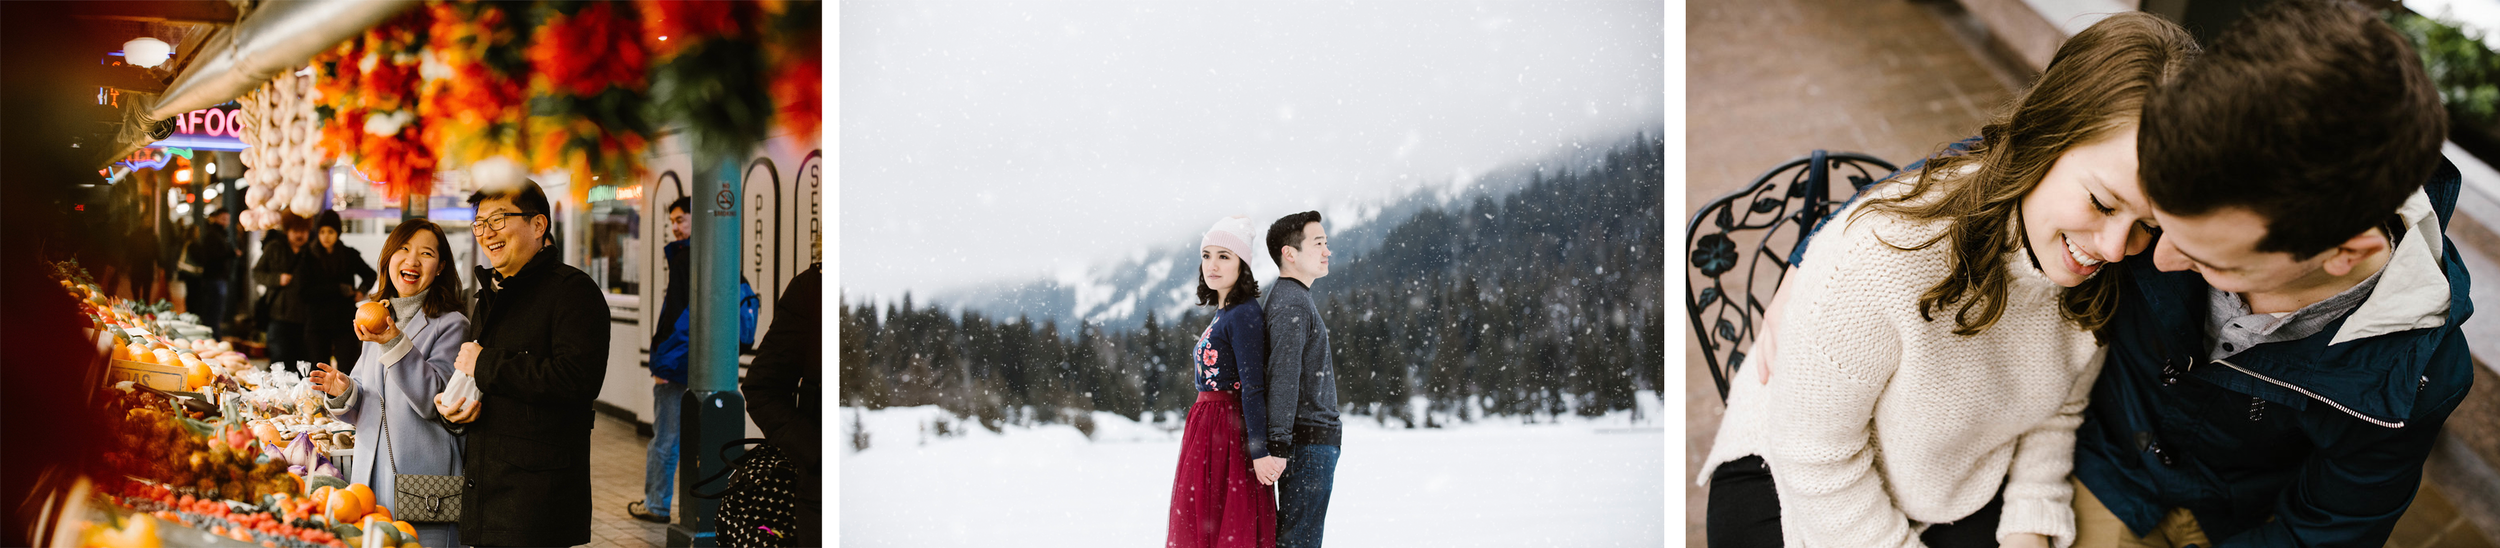 Seattle Engagement Photographer - Pike Market - Snoqualmie - Pioneer Square